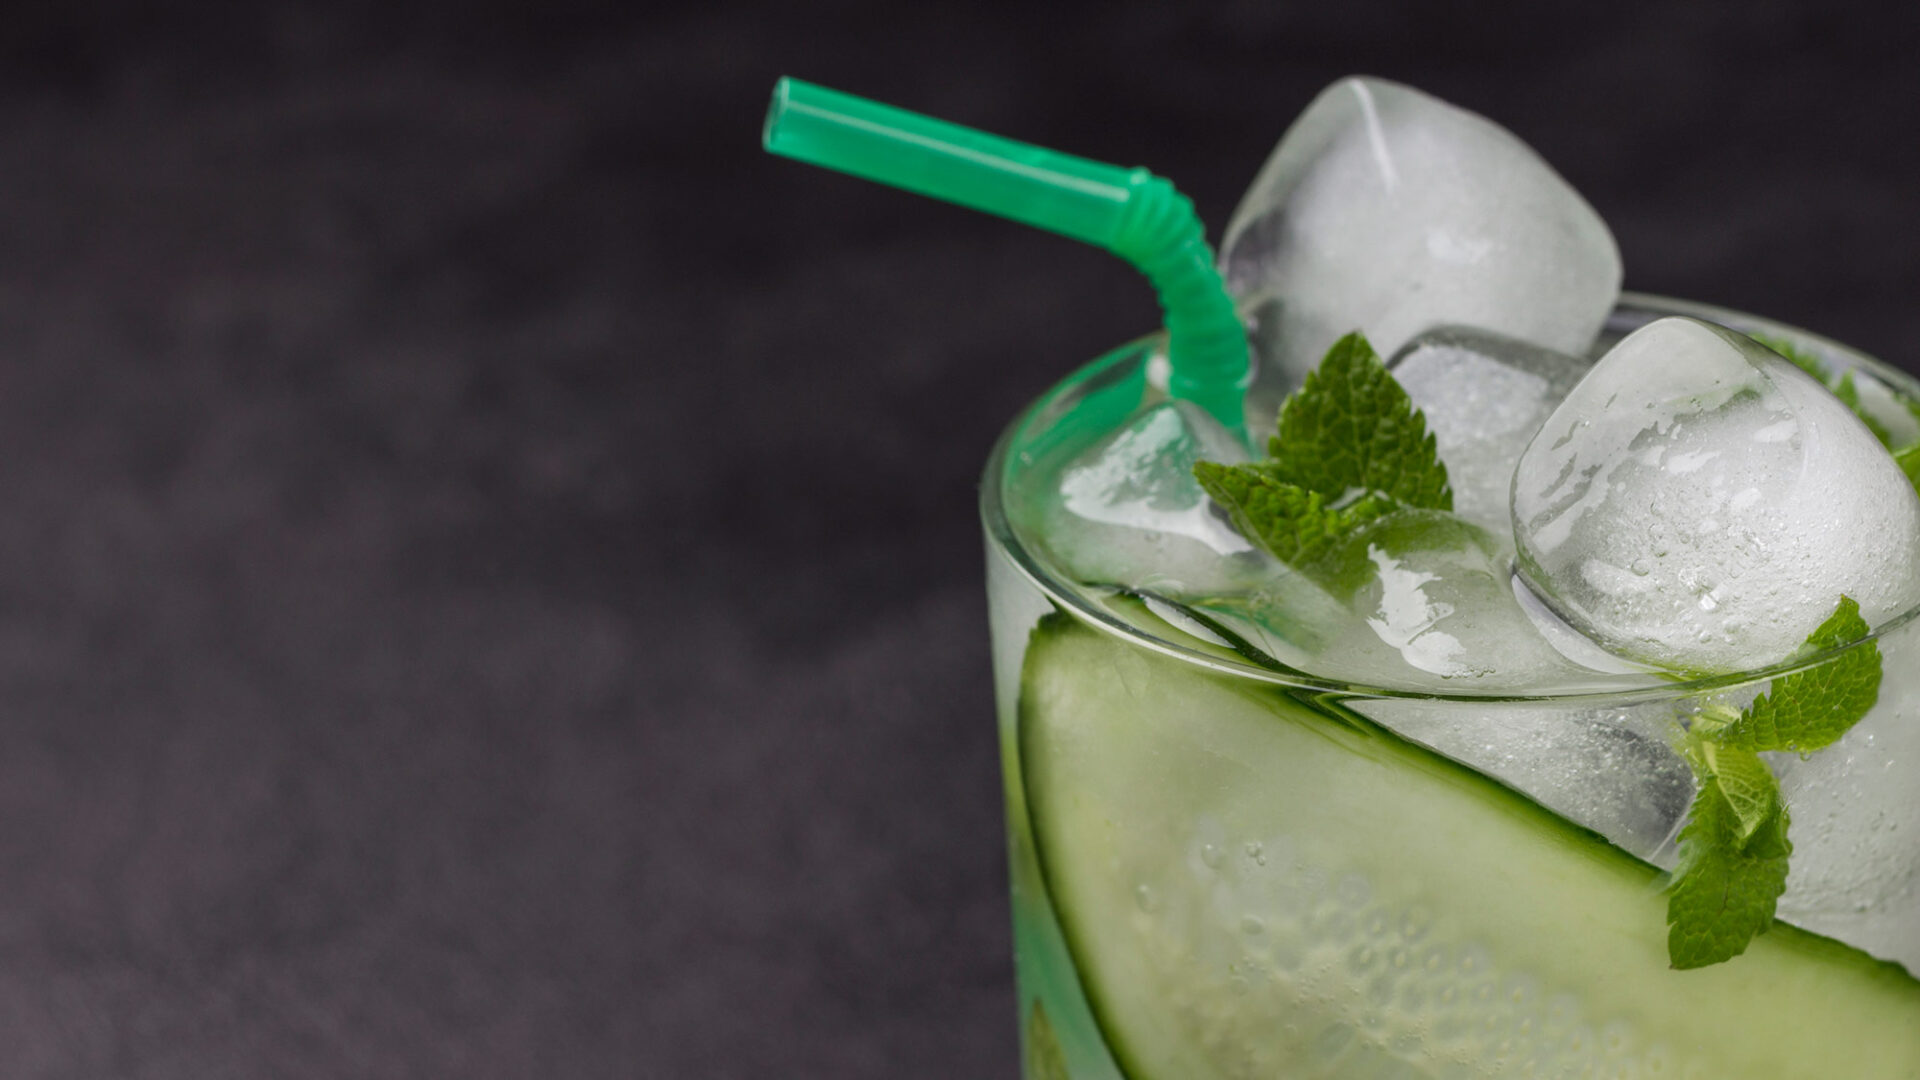 cooling summer drink with ice slices cucumber mint chopped cucumber black background copy space 16 9